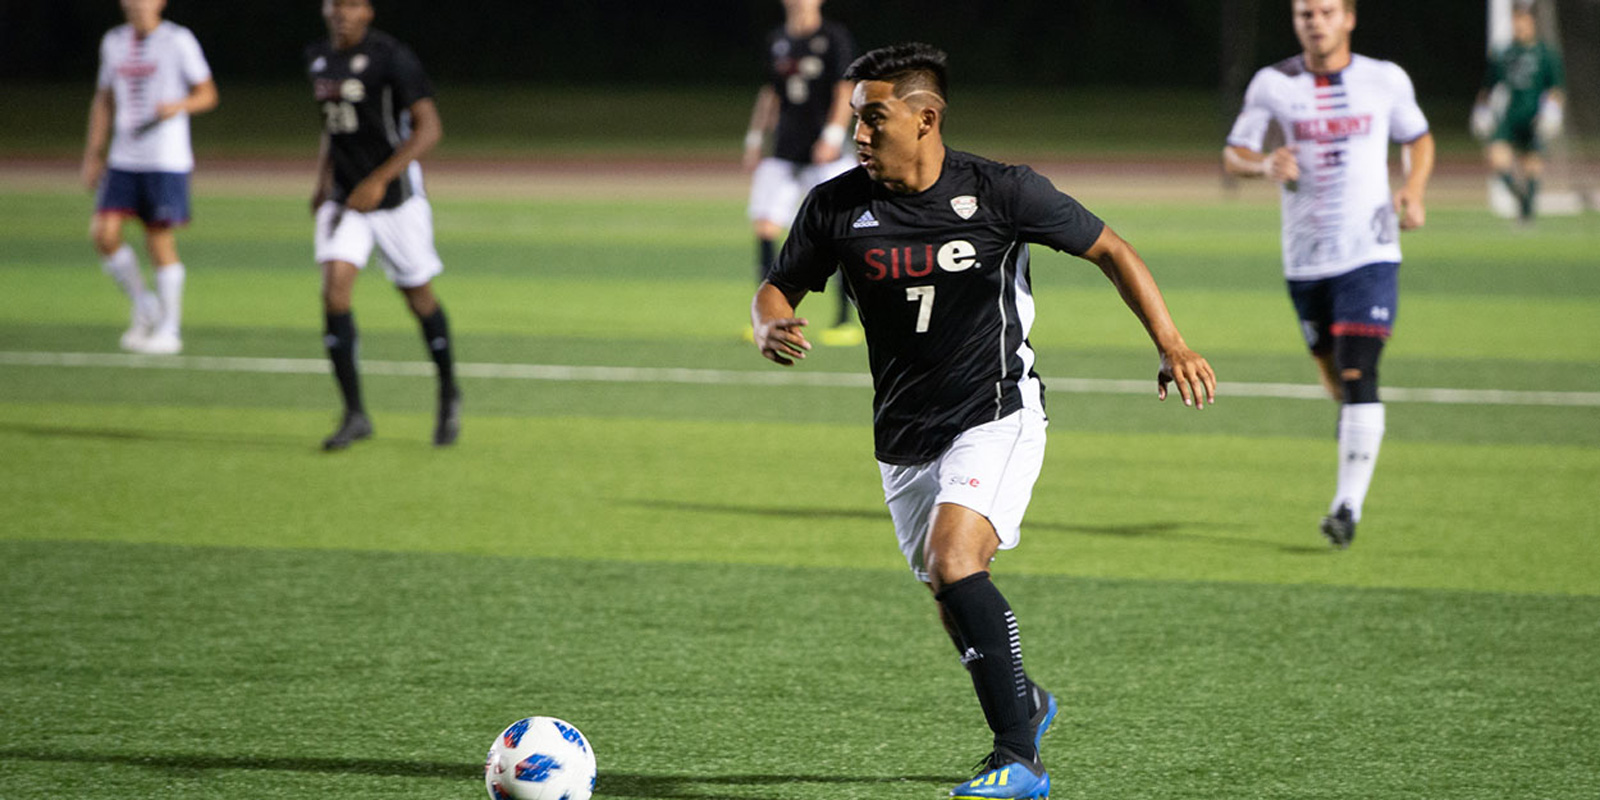 SIUE Men's Soccer player.